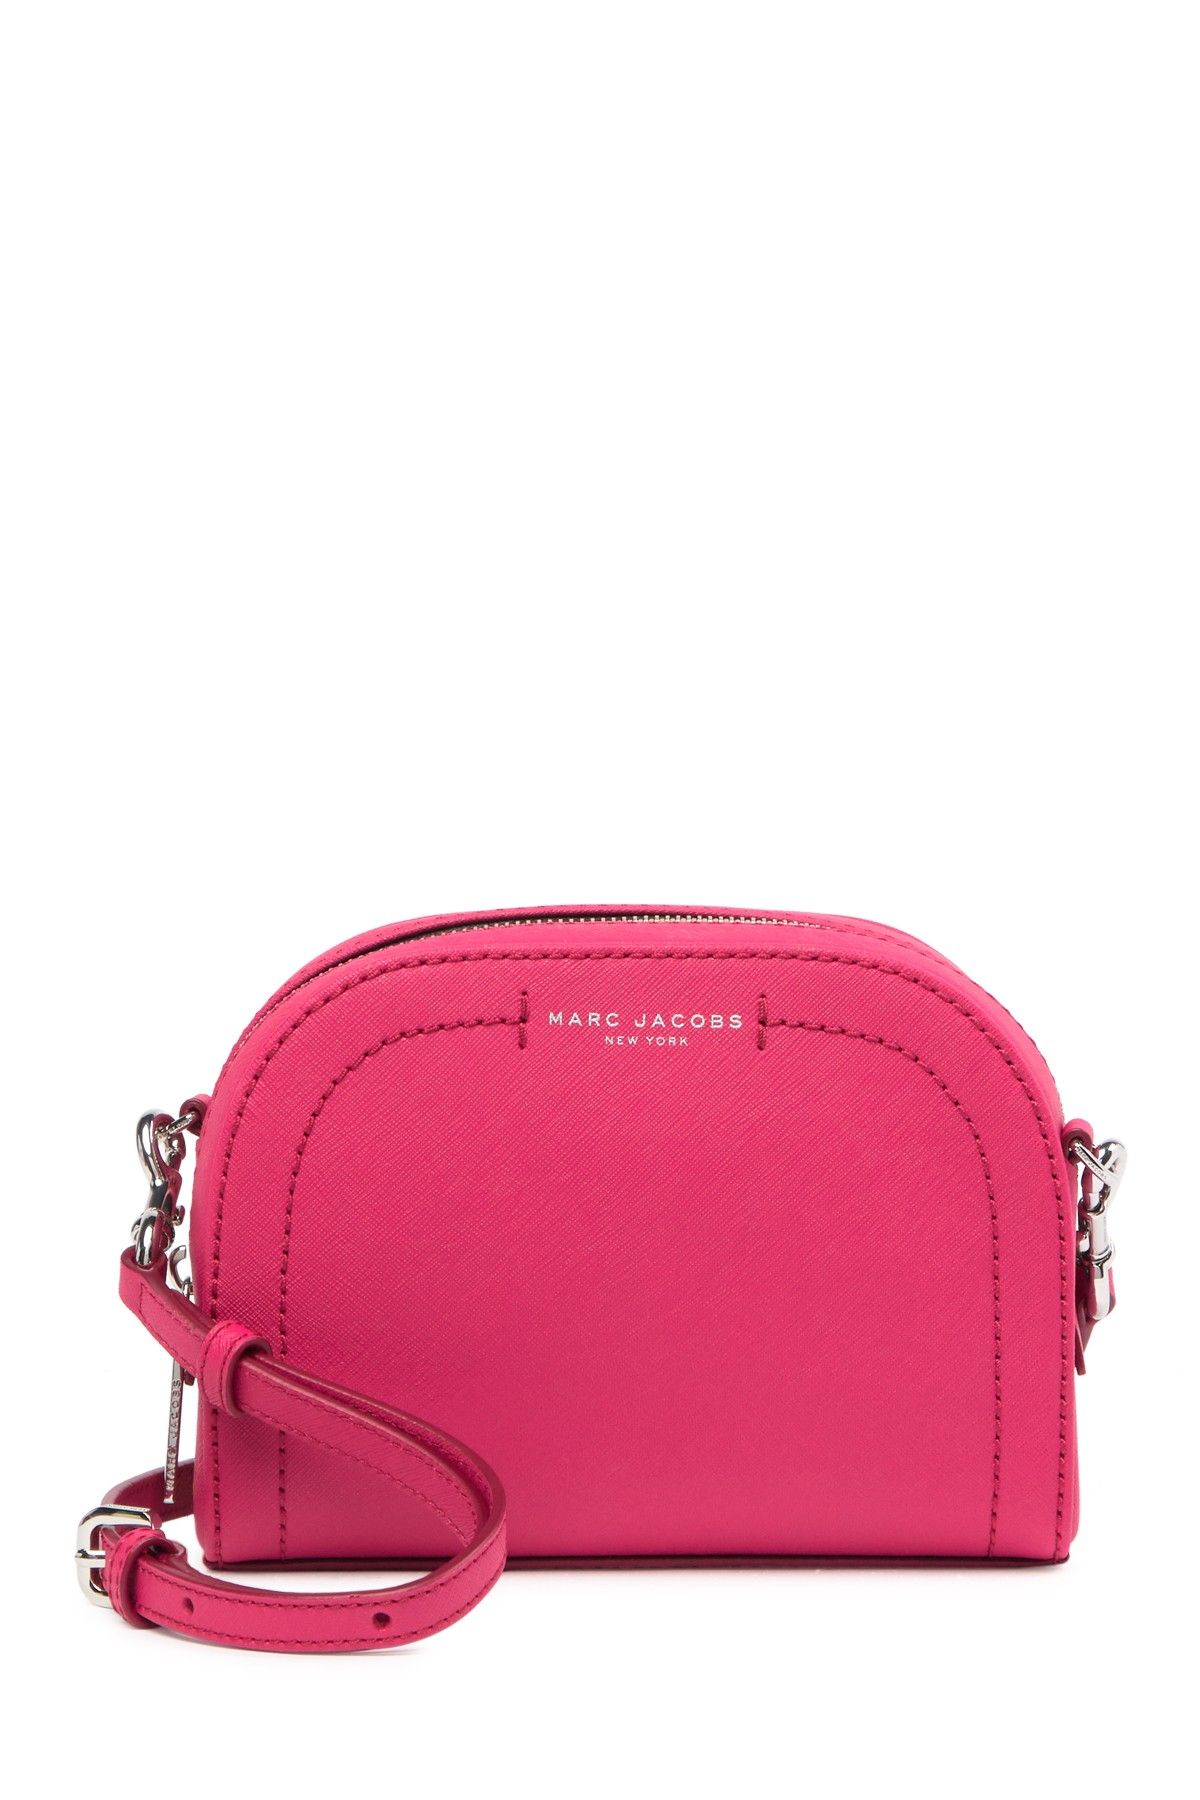 0c0f20e00812 Marc Jacobs | Playback Leather Crossbody Bag in 2019 | dreaming of ...